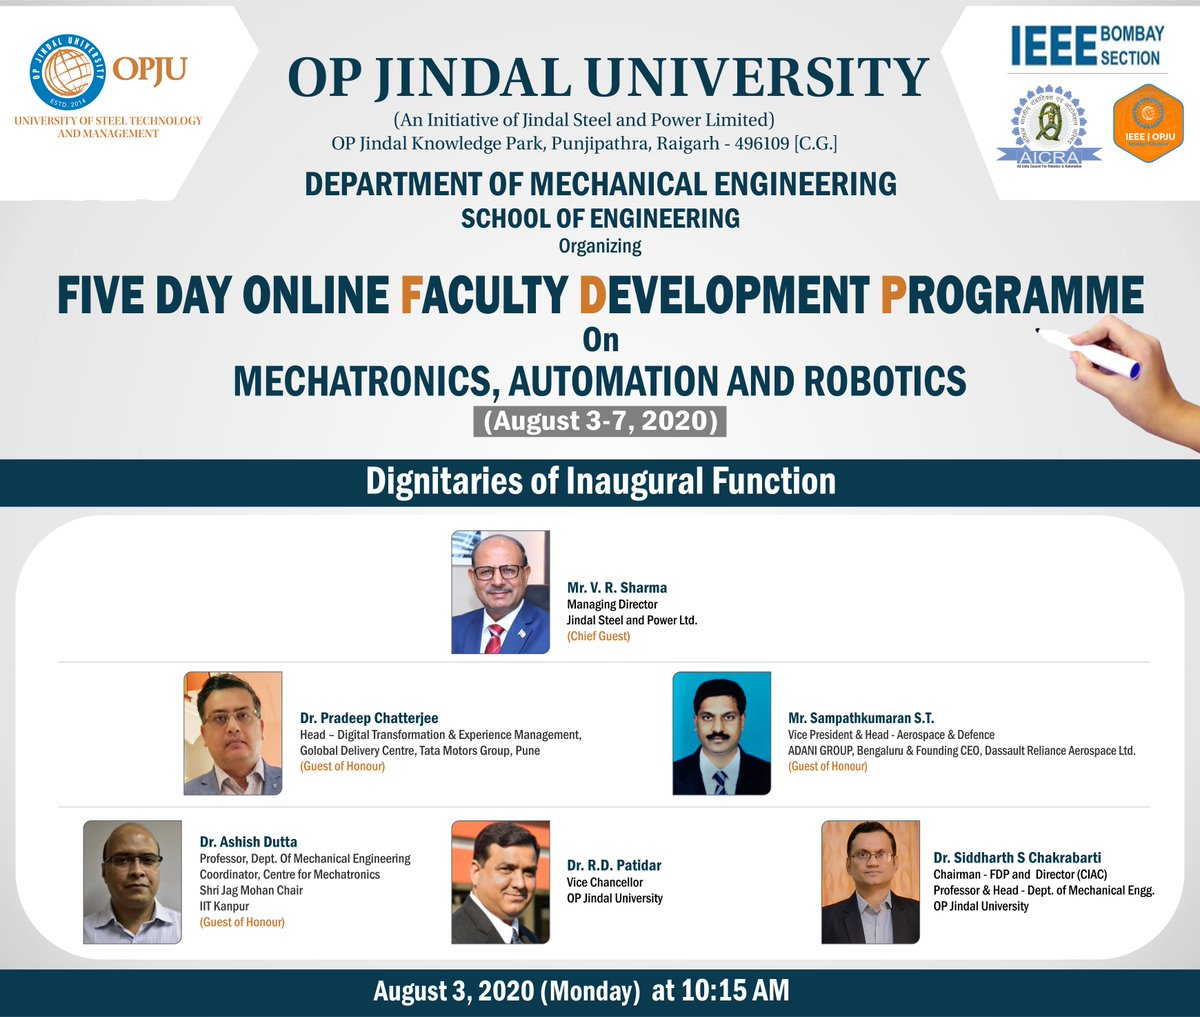 Embarking our FDP on with the IEEE Bombay Section and All India Council of Robotics and Automation (AICRA) in the Presence of our esteemed Guests.   We invite you to be the part of the inaugural session on August 3, 2020 at 10:15 AM Live on Facebook. https://t.co/wzyMvD81ah